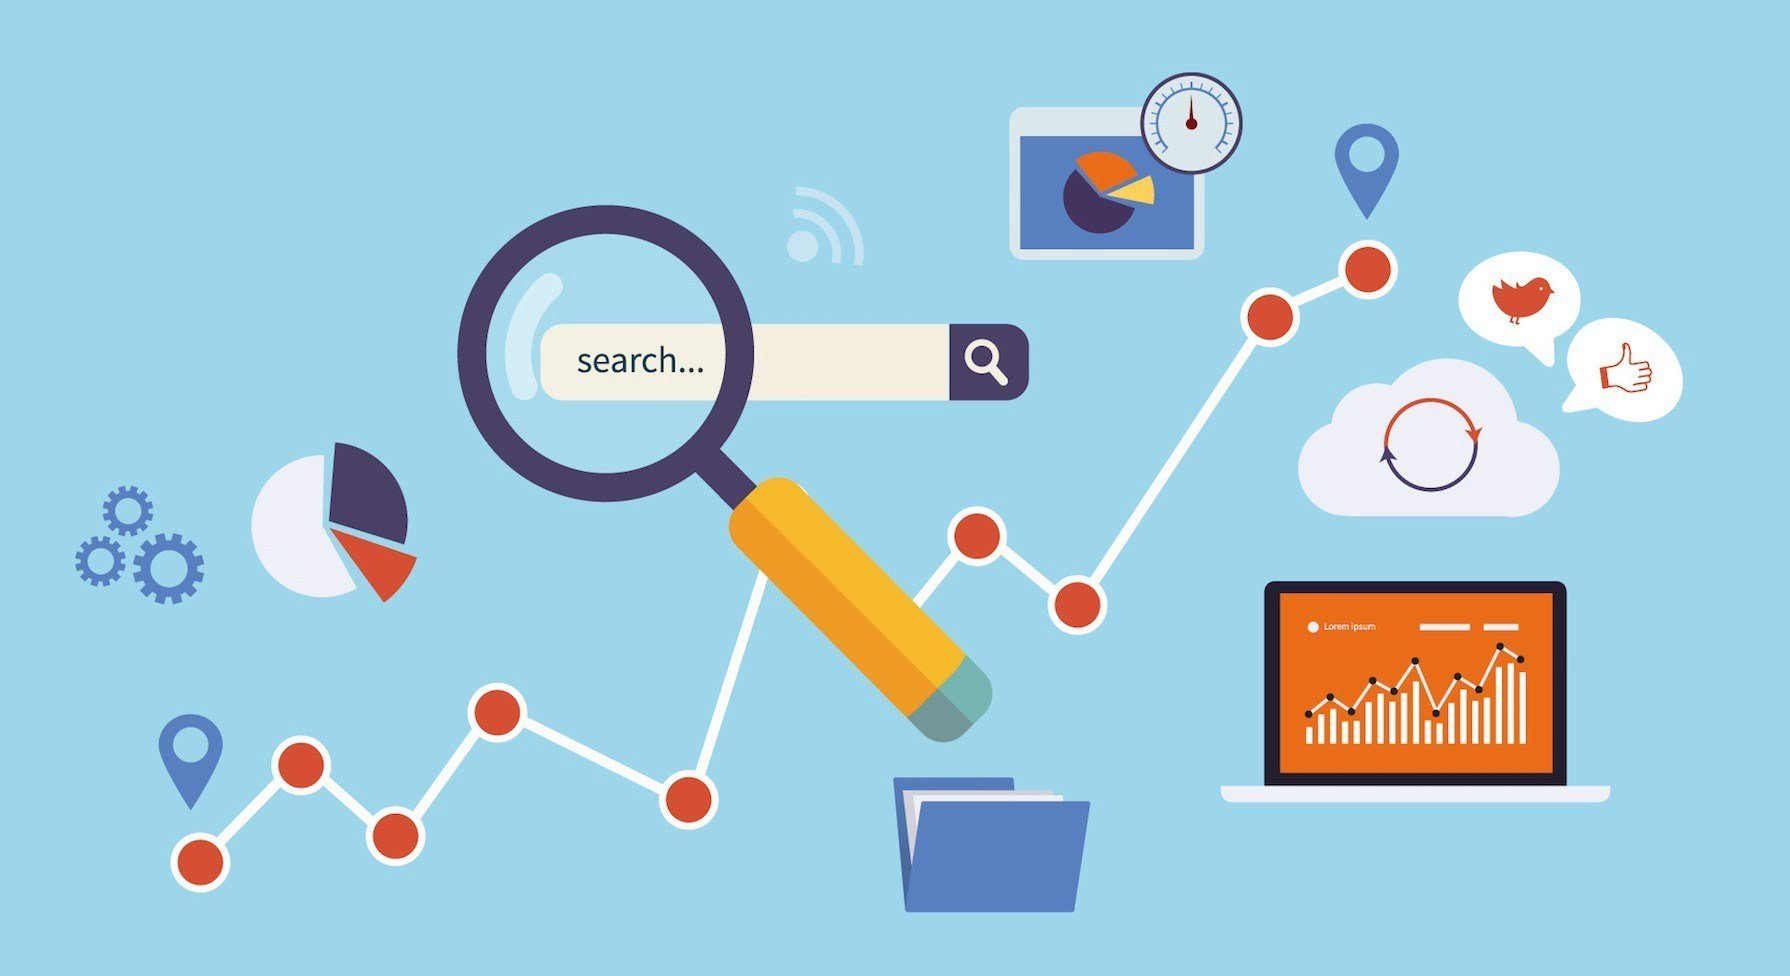 What is the best way to improve rankings in Google Product Search?